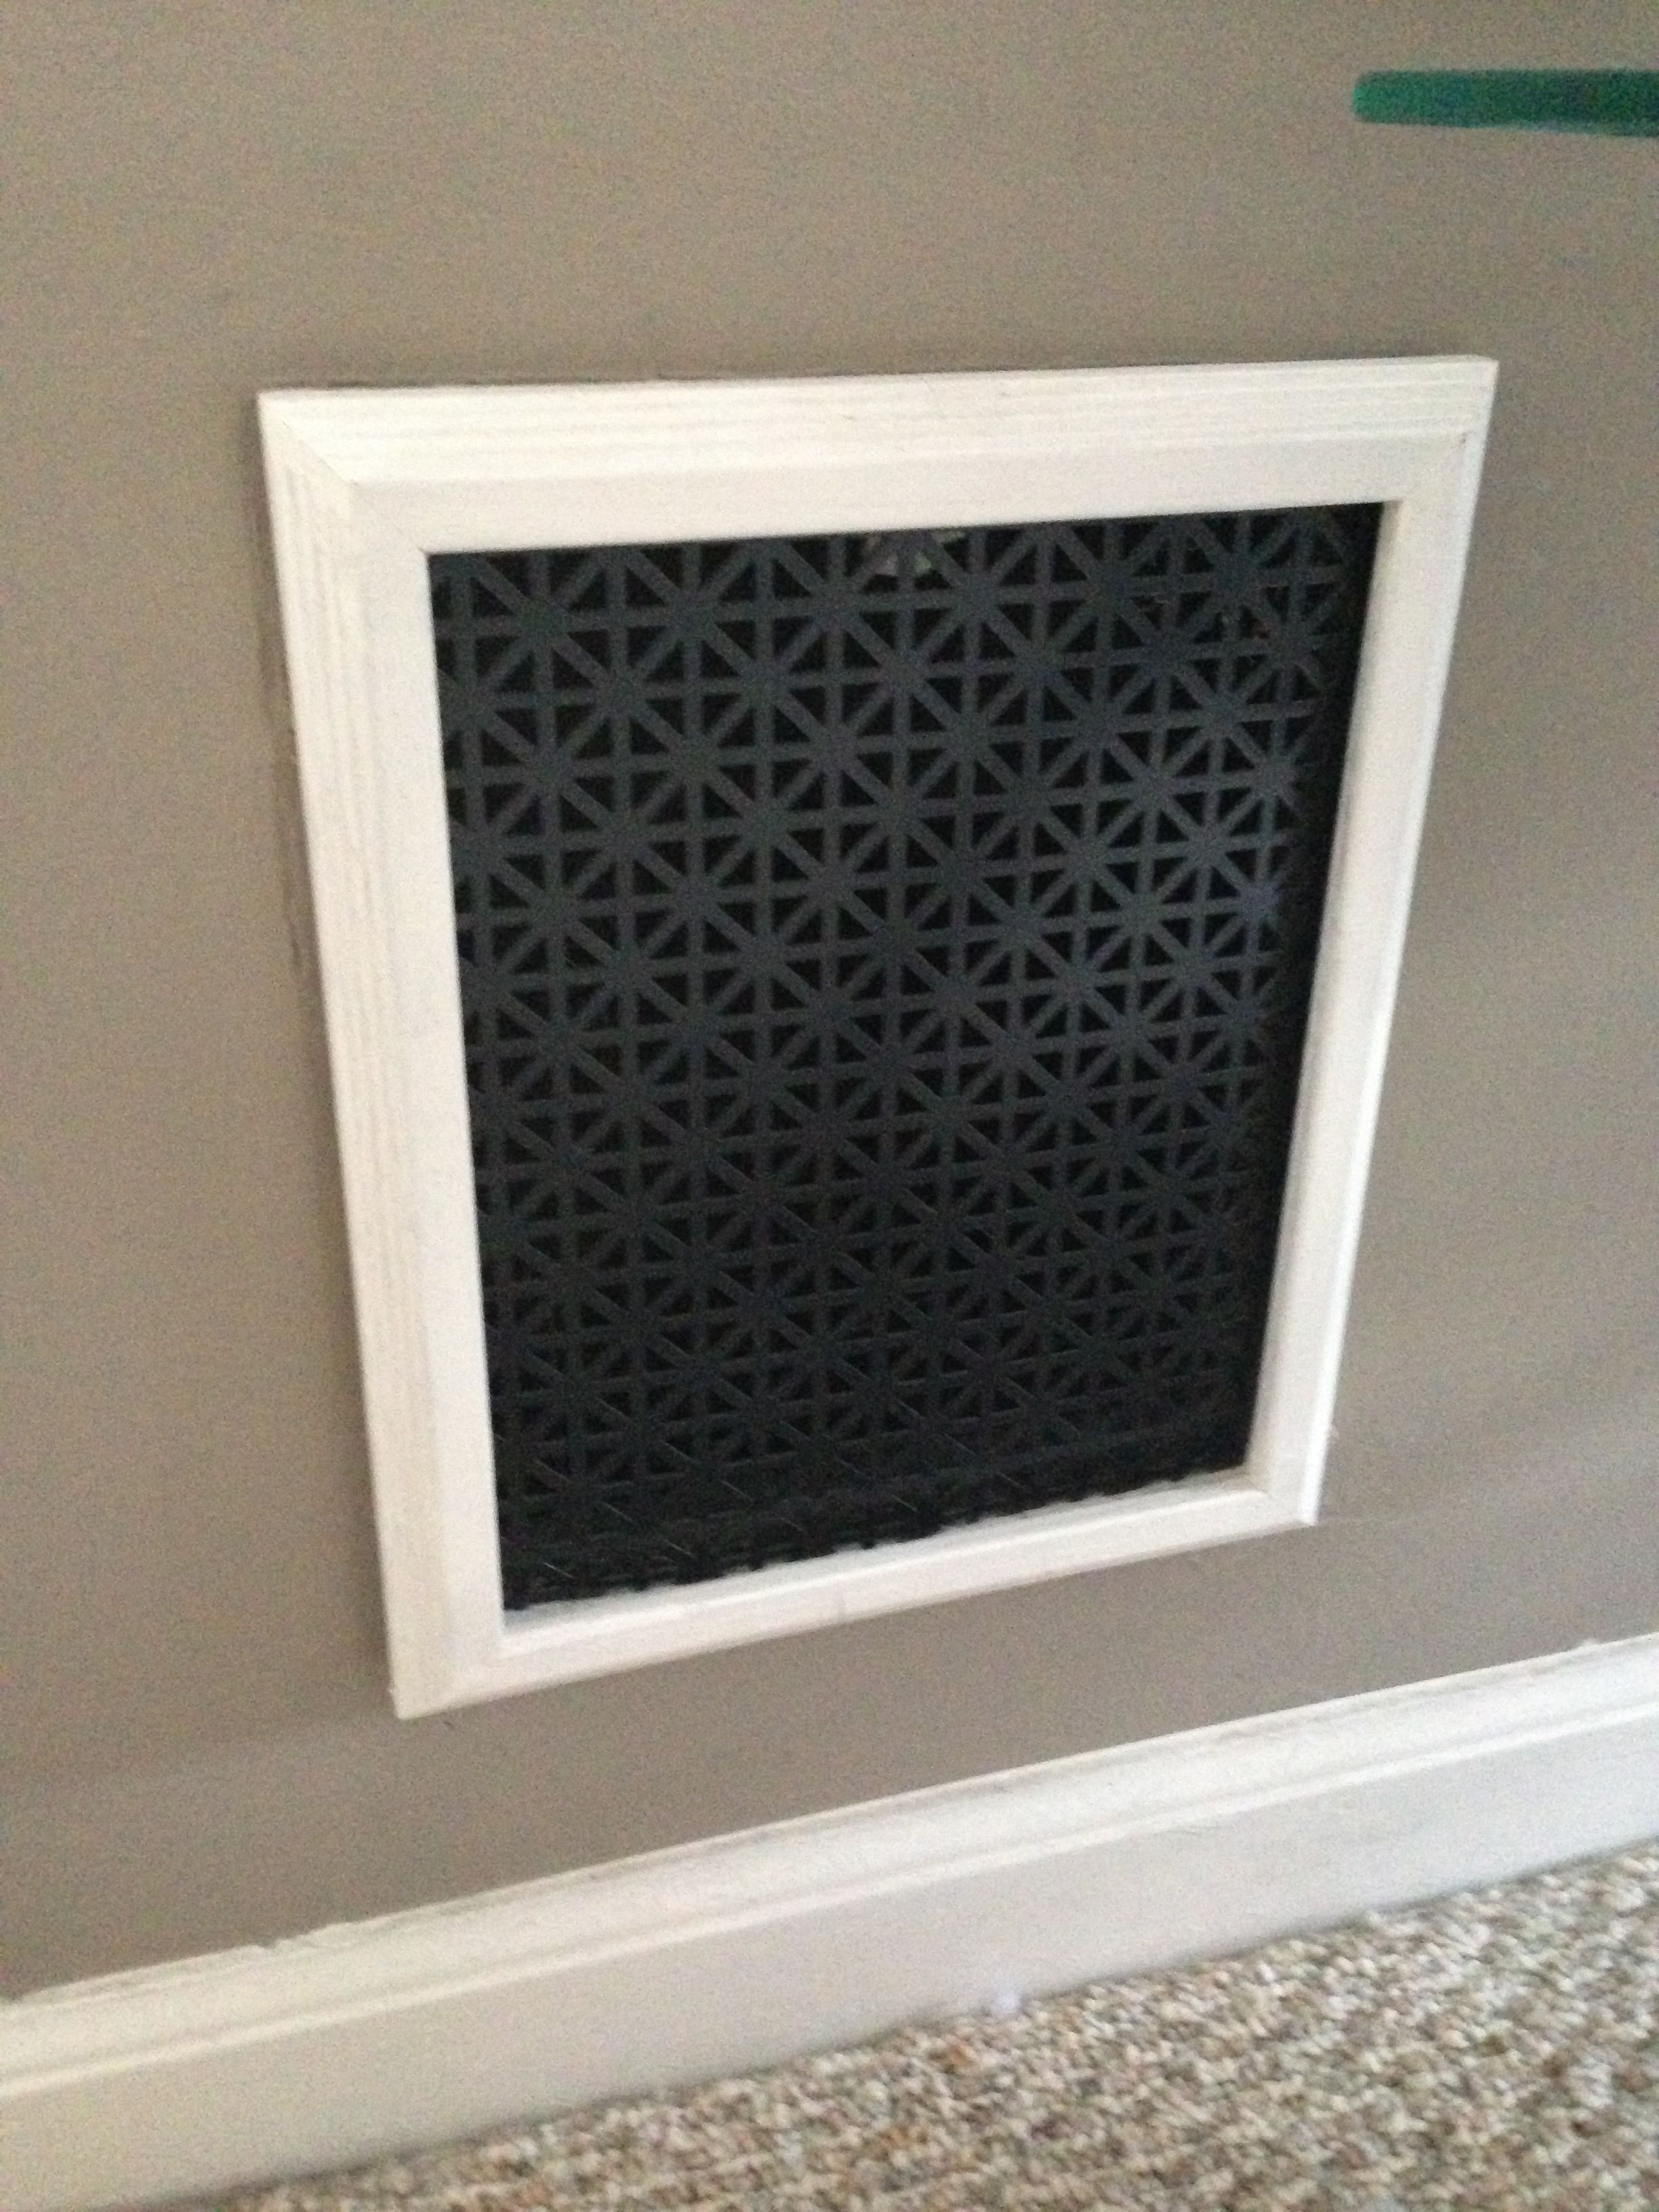 I Replaced My Old Heat Register Covers By Taking An 8x10 Picture